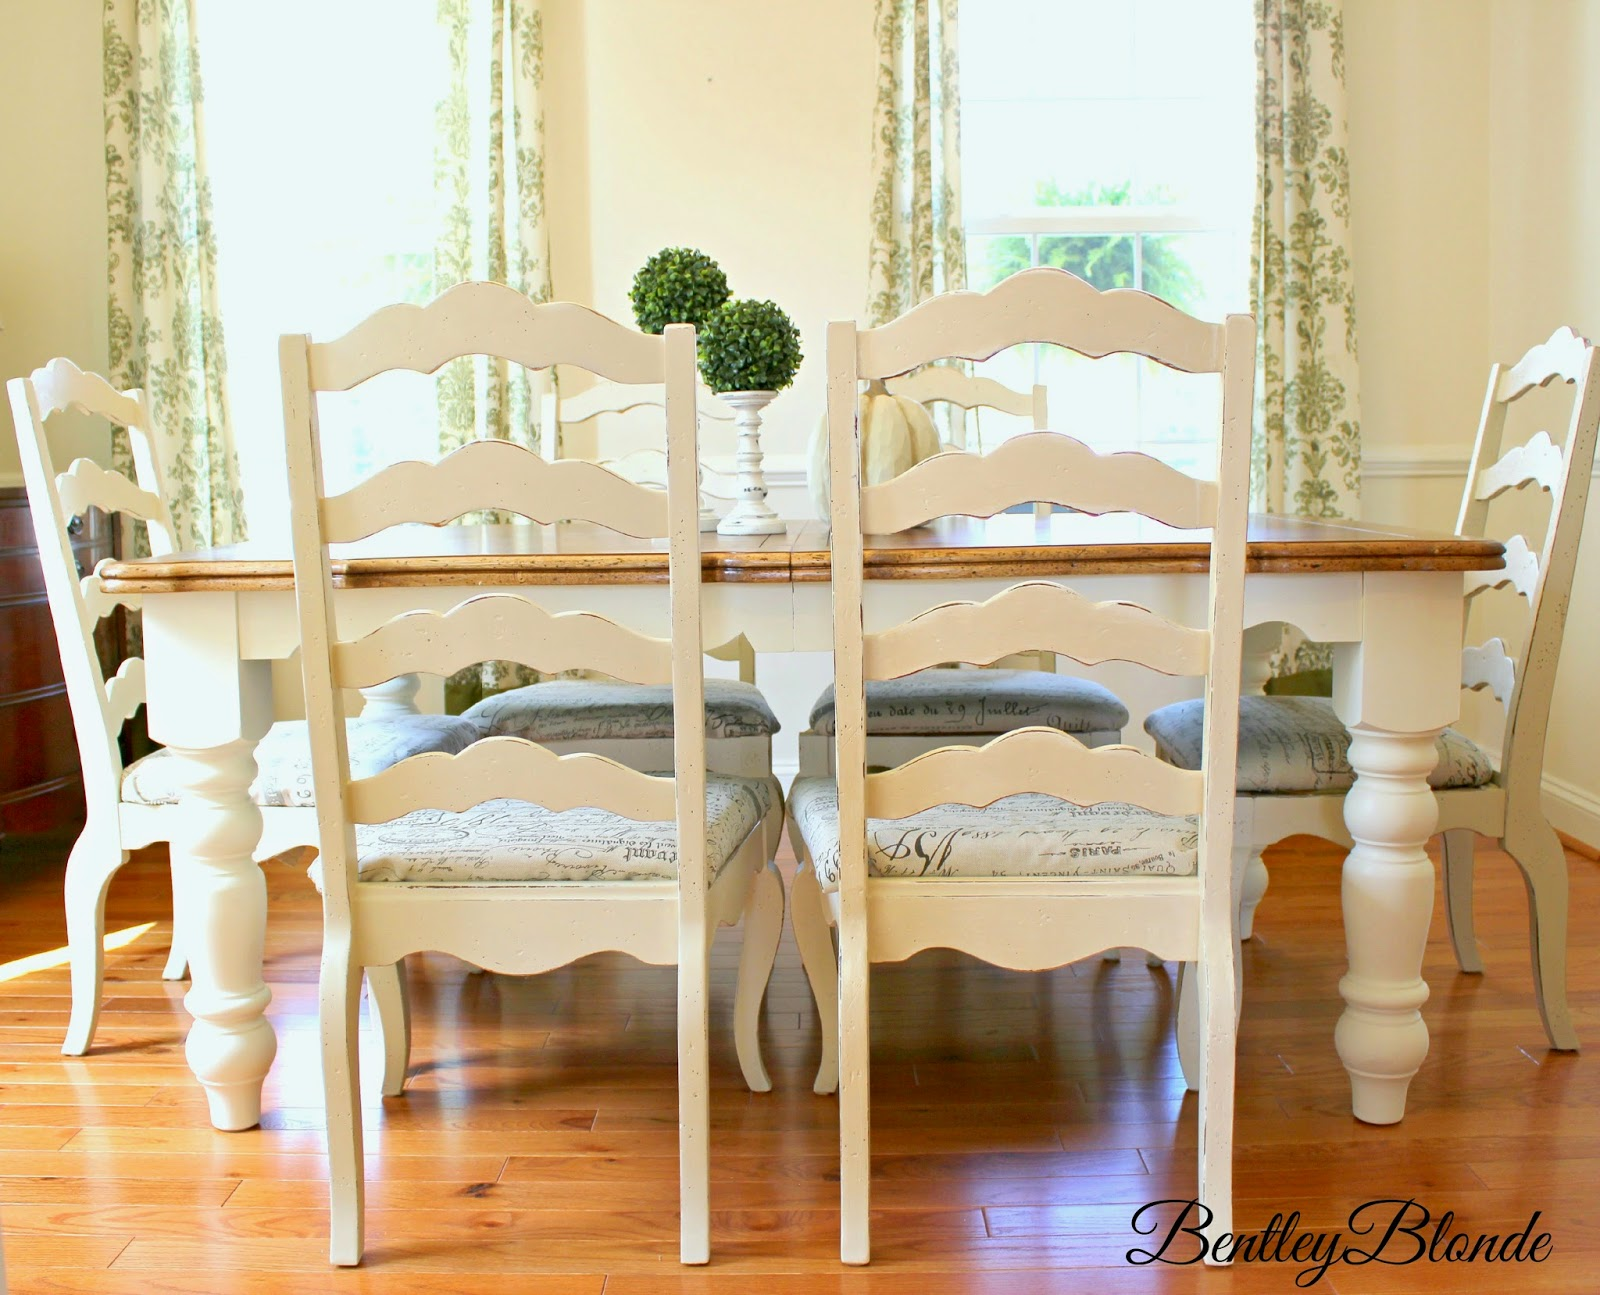 Delightful BentleyBlonde: DIY Farmhouse Table U0026 Dining Set Makeover With Annie Sloan  Chalk Paint®